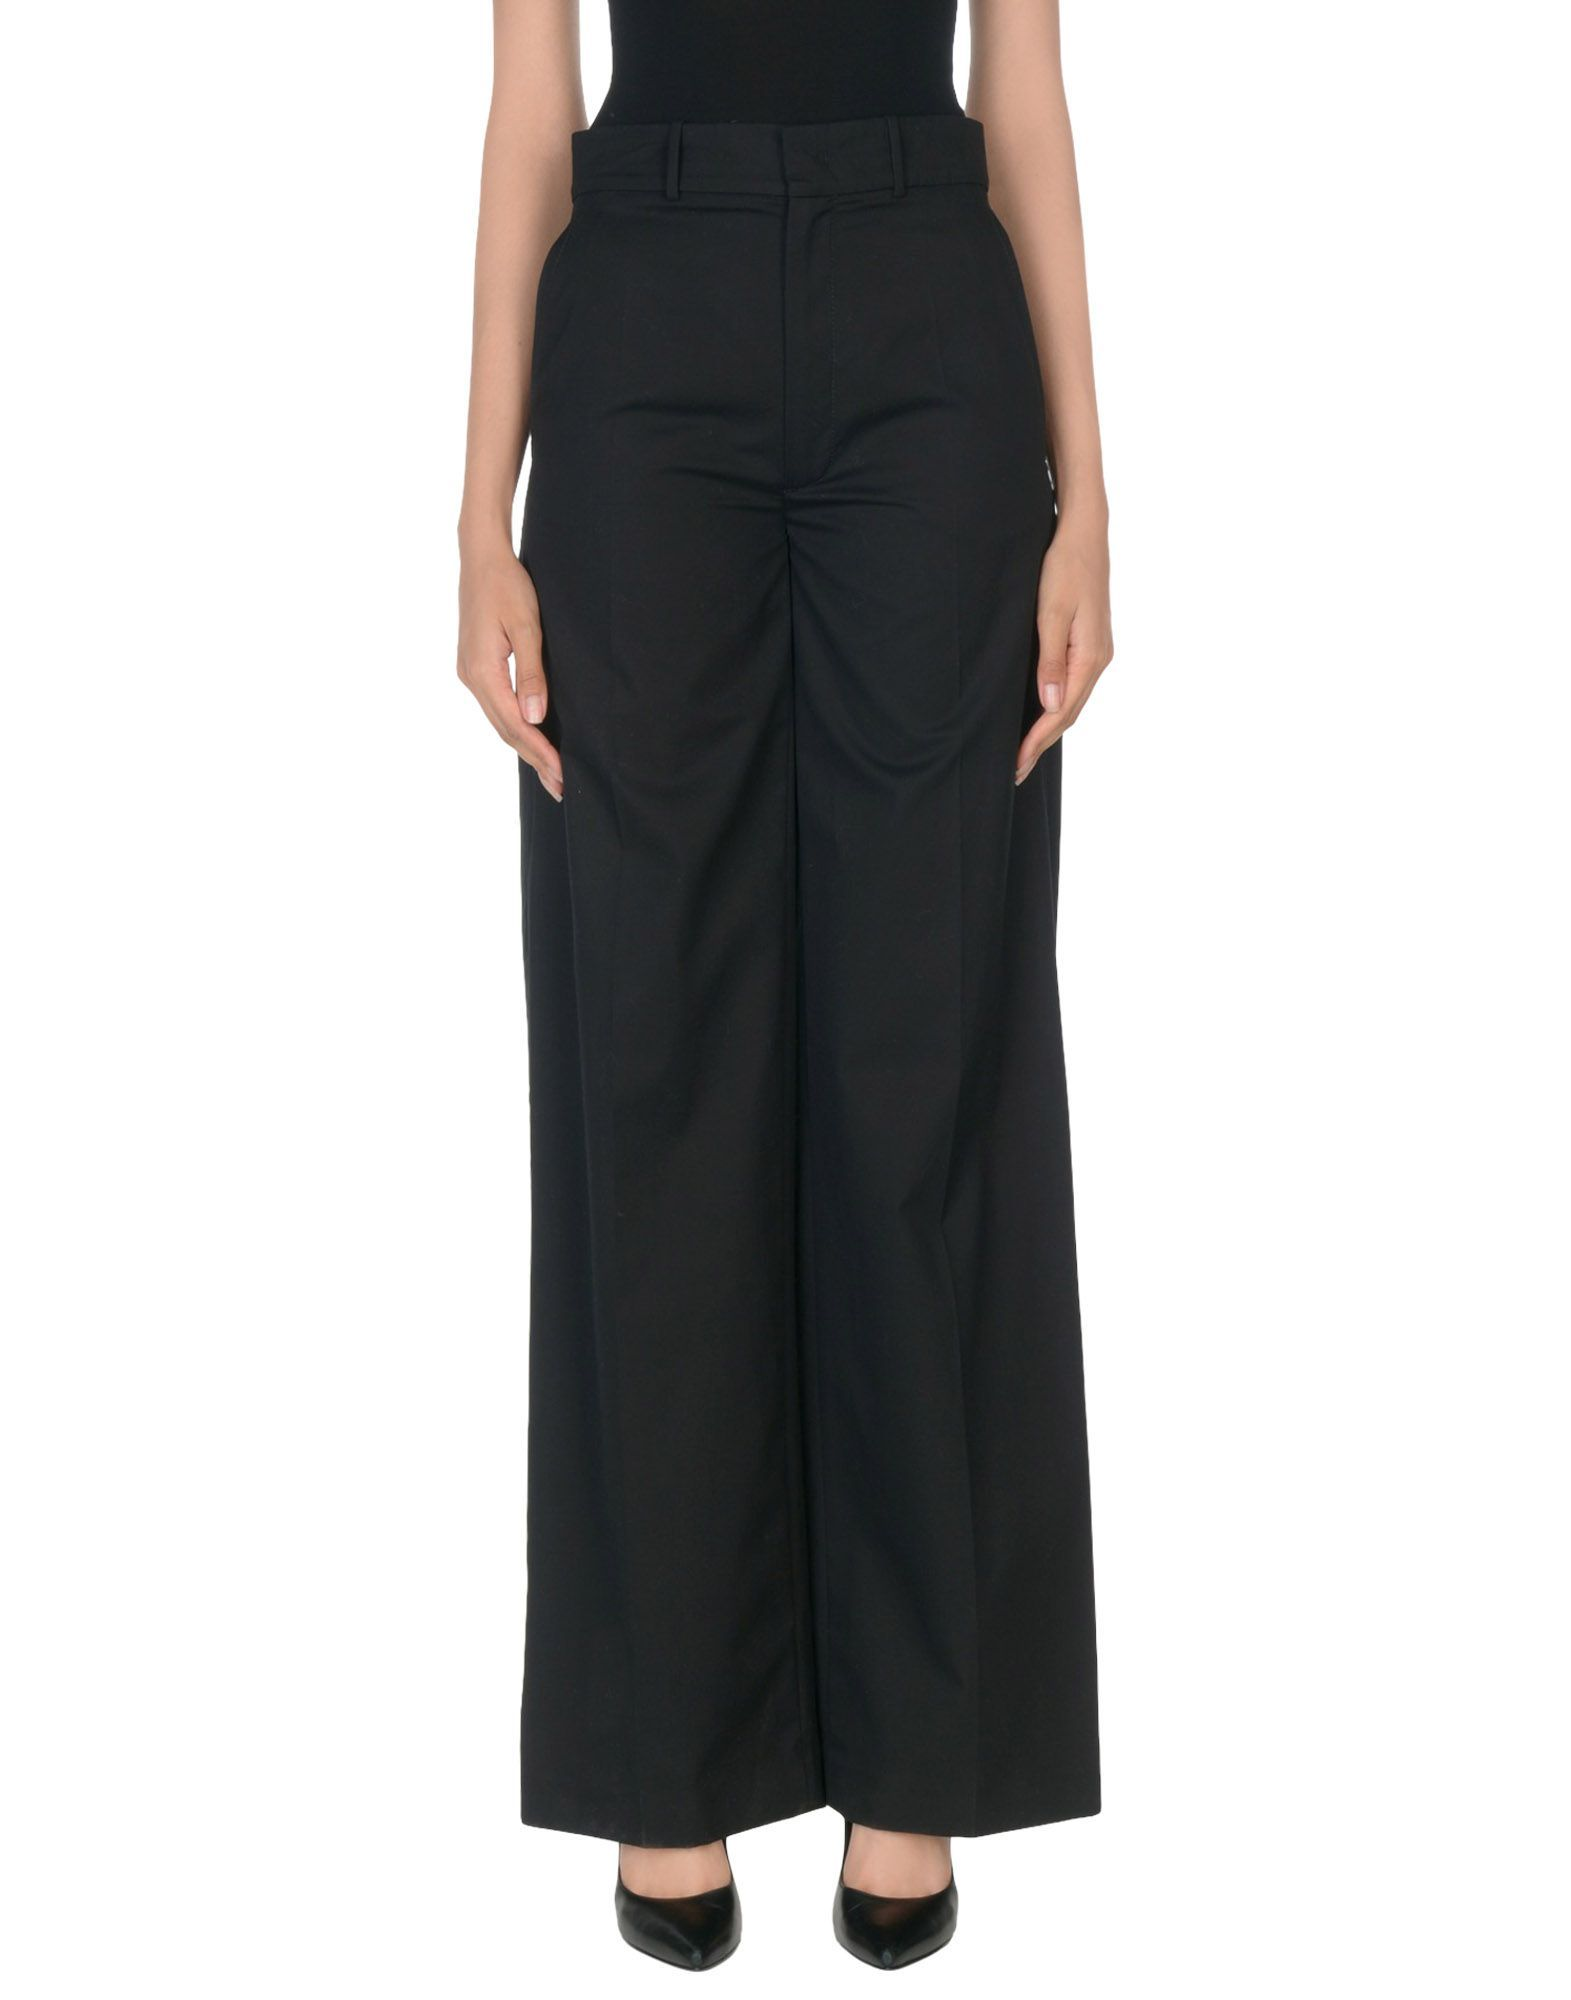 Joseph Black Cotton Wide Leg Trousers